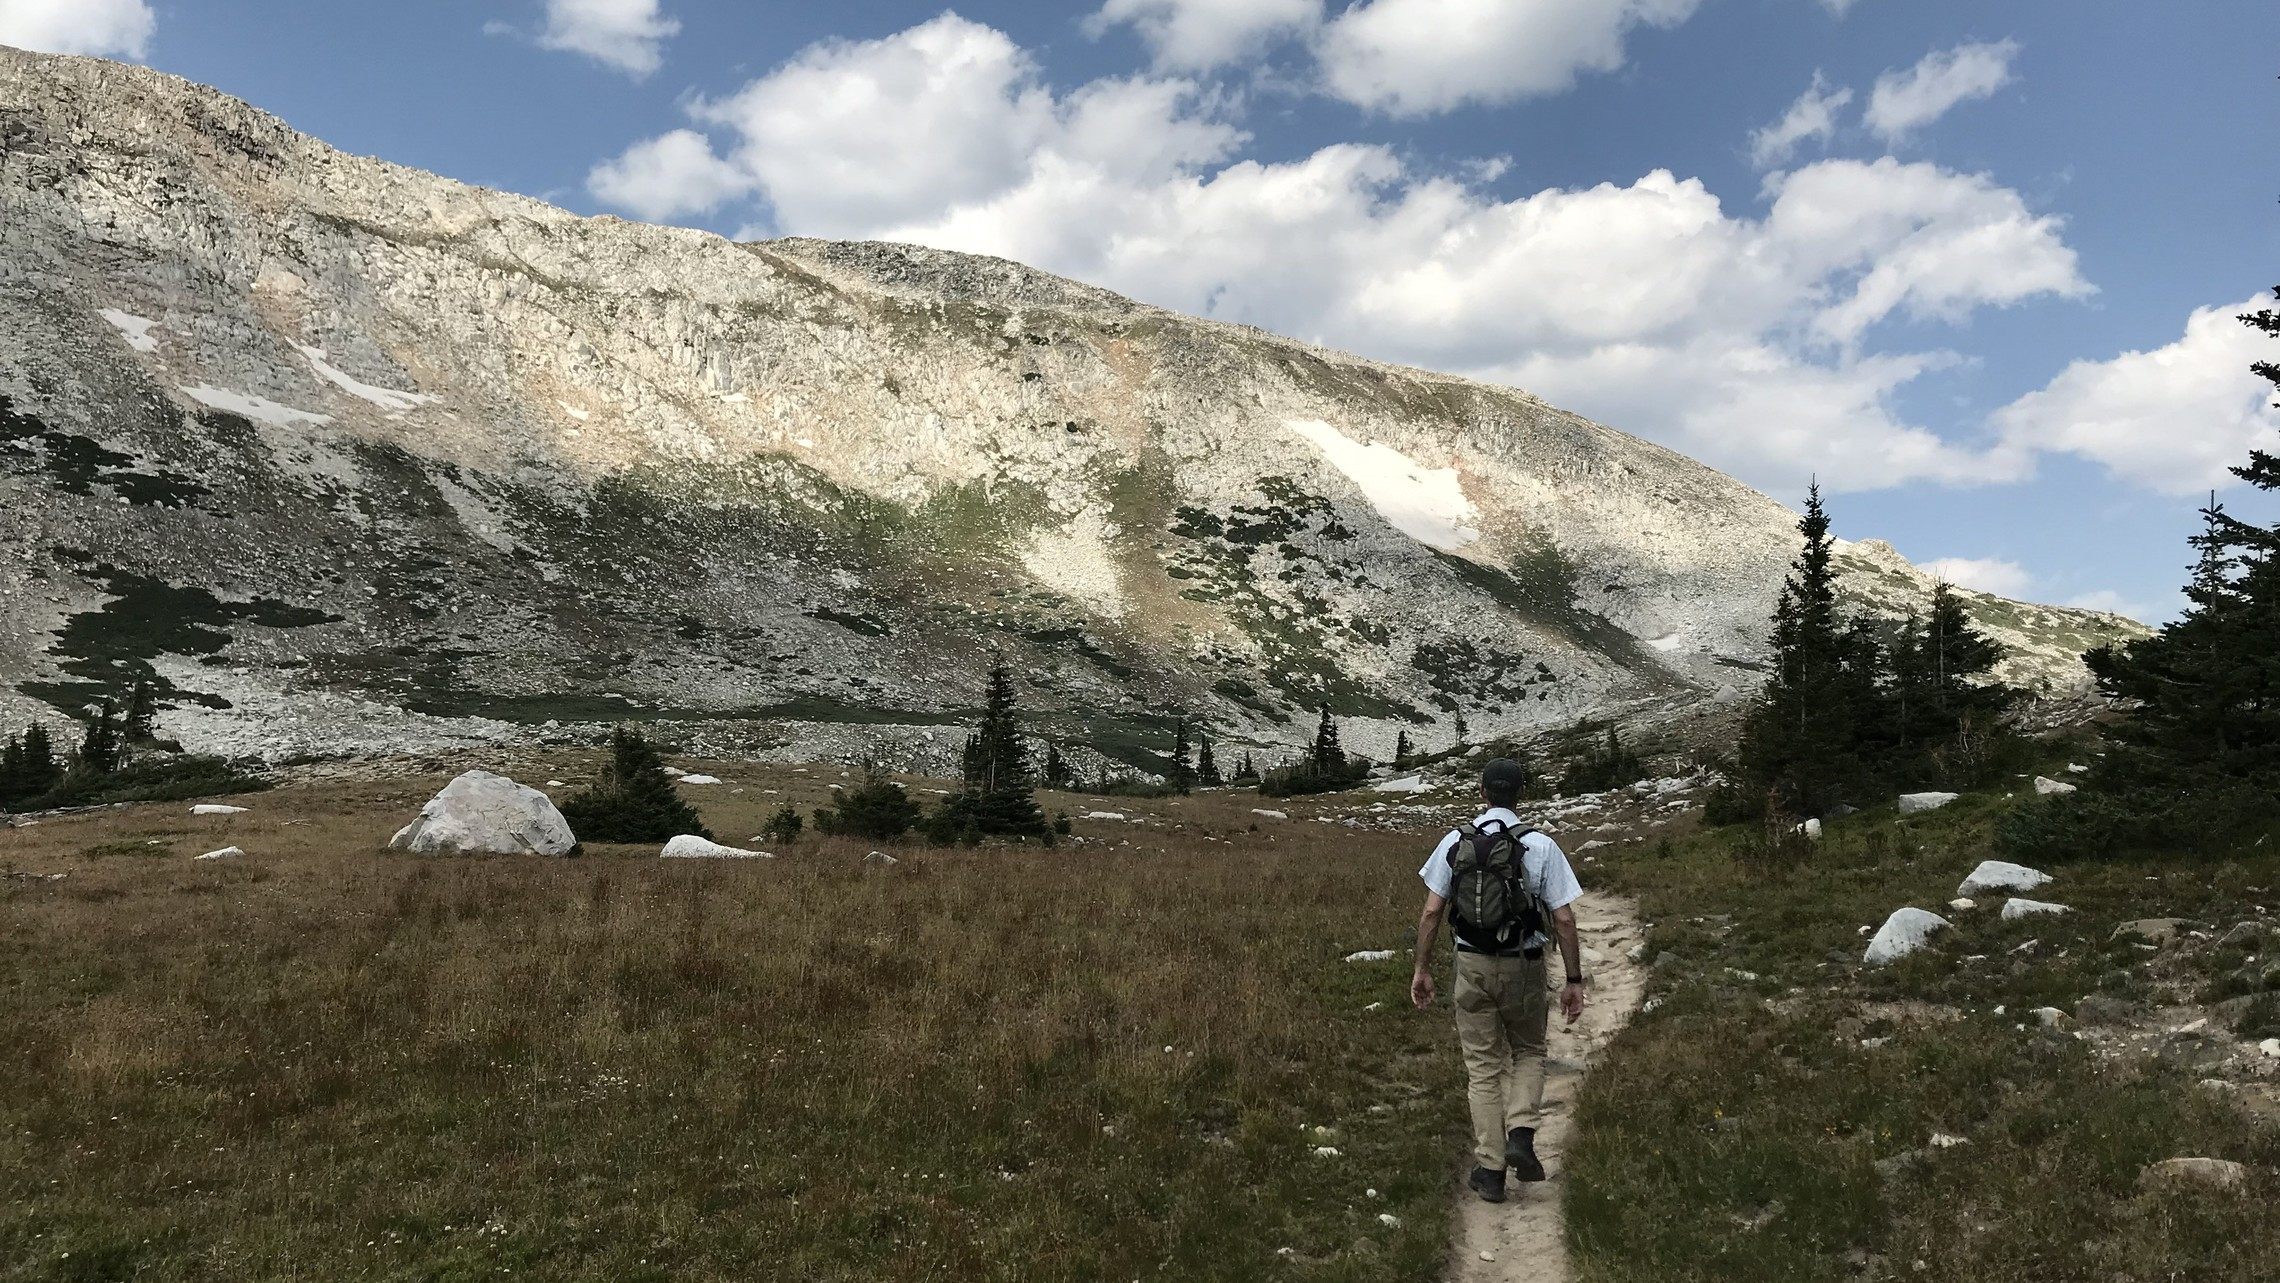 A man on a trail hiking in the mountains